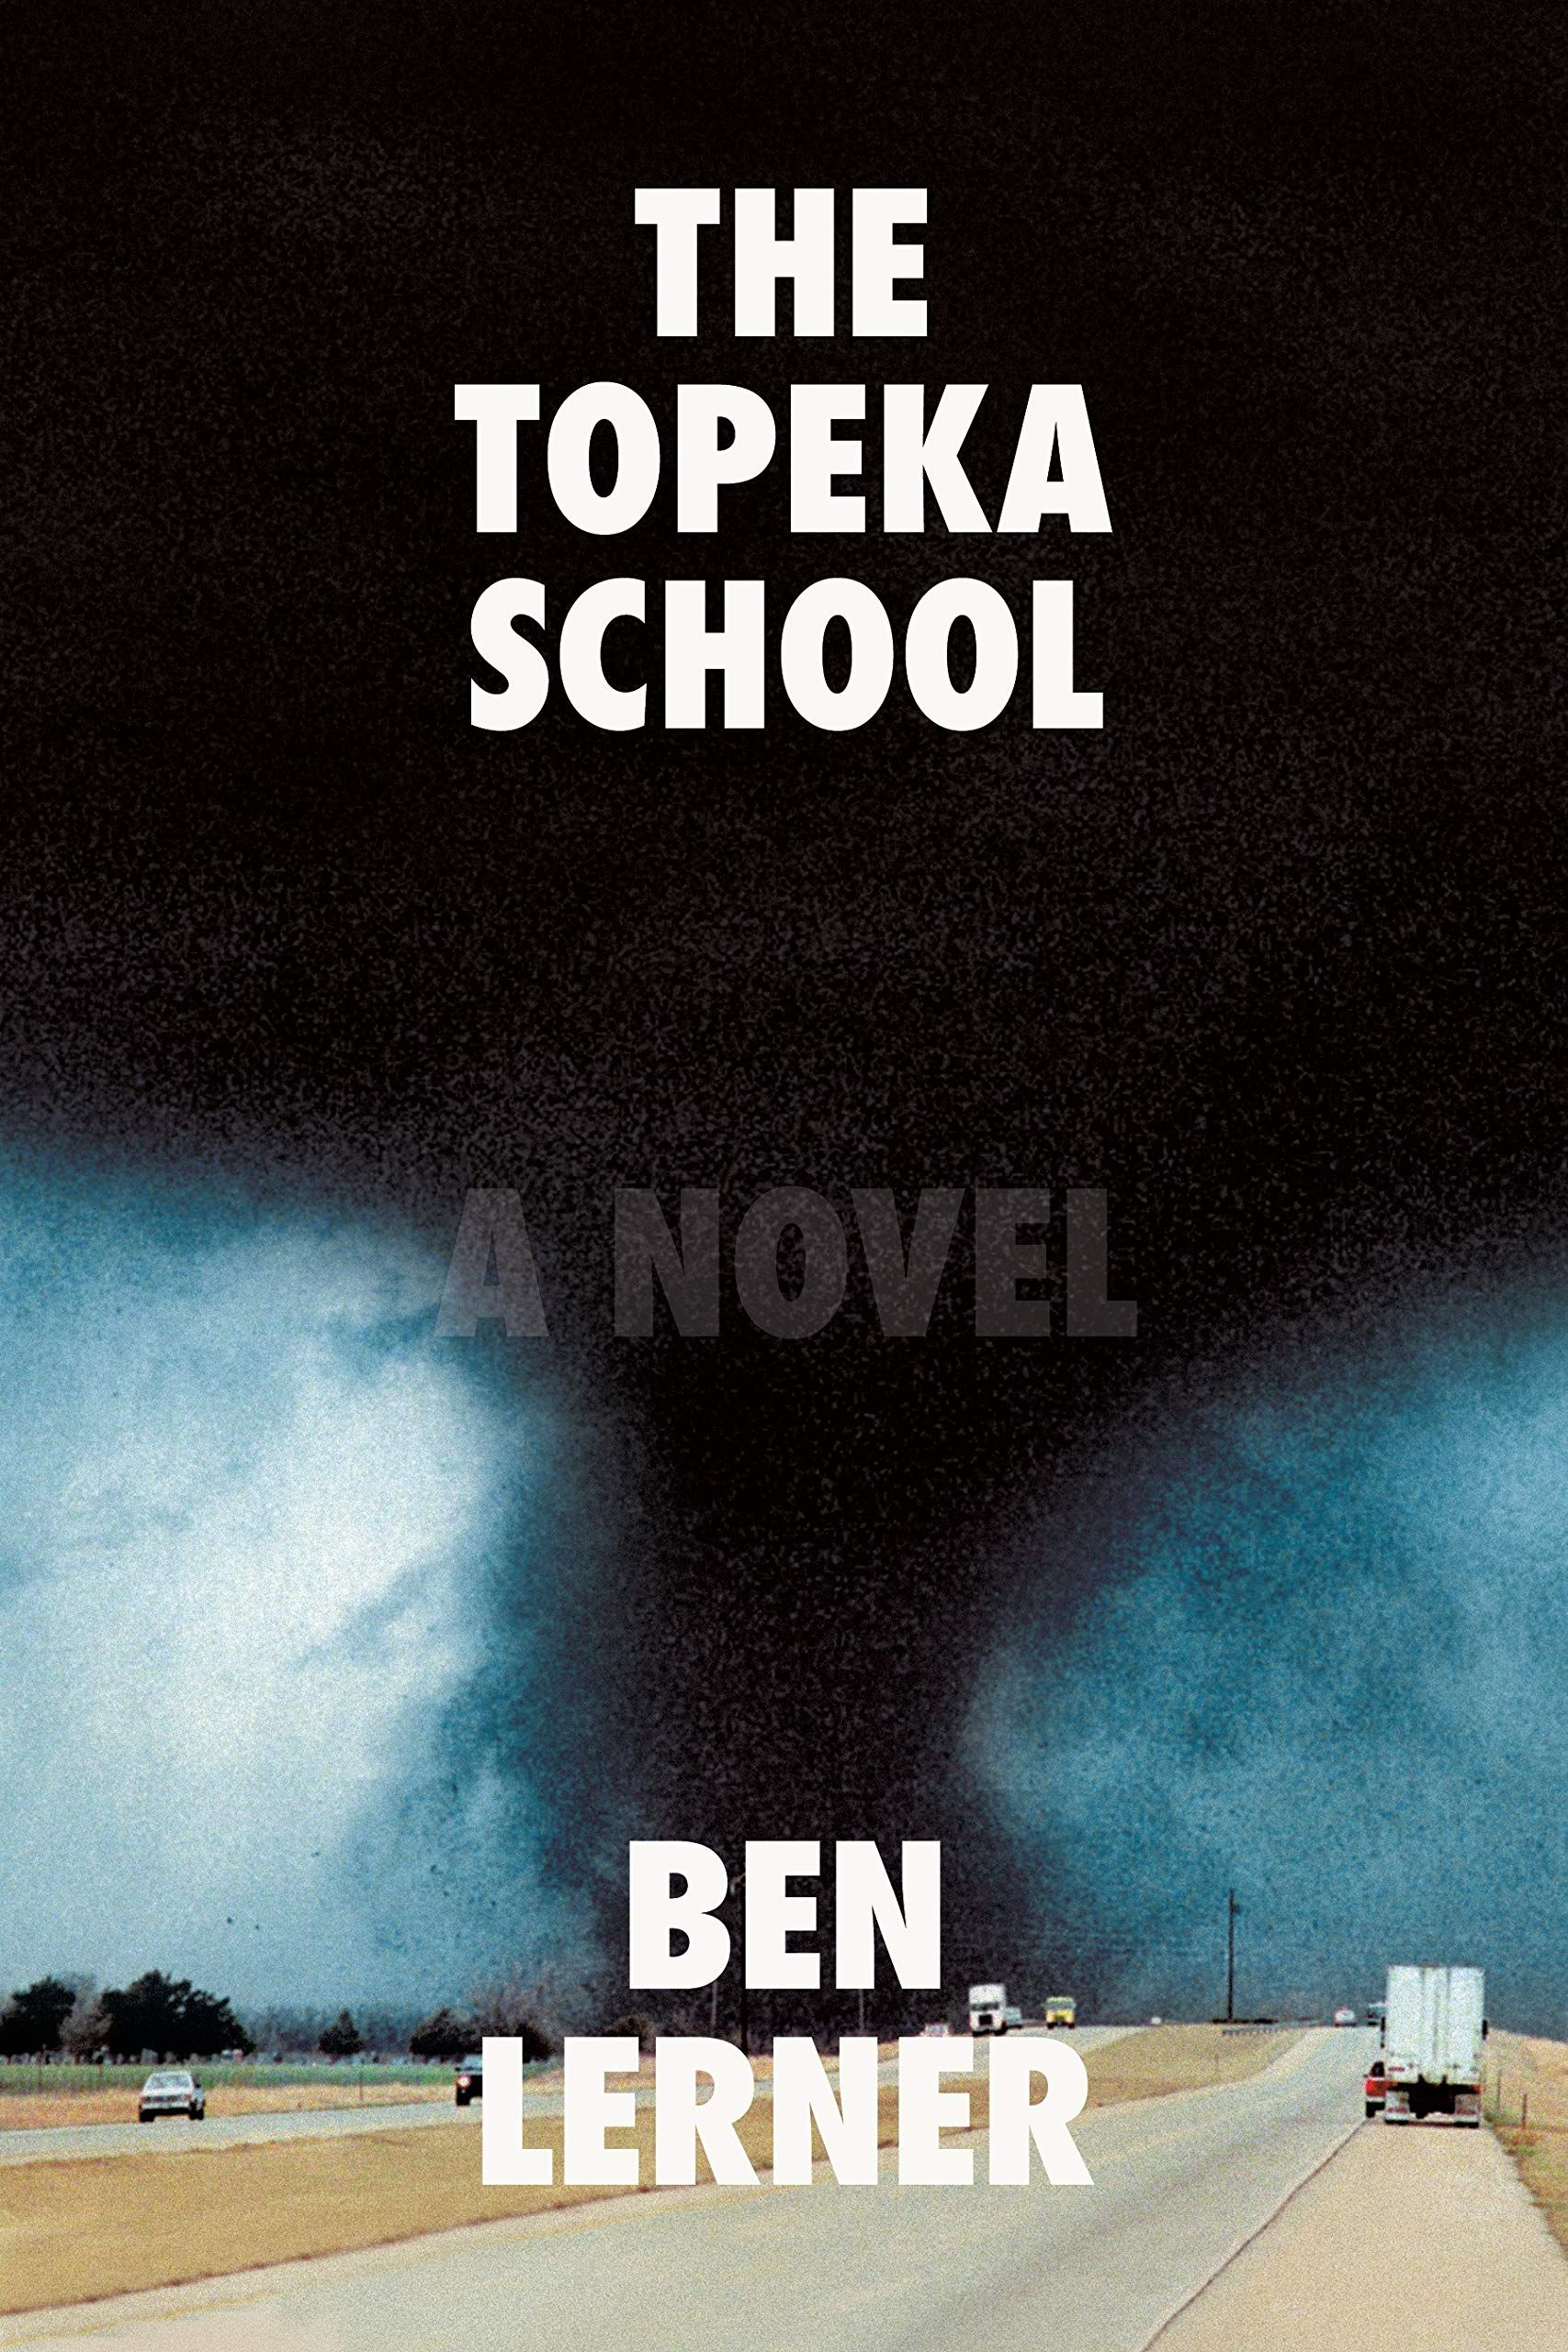 Pdf Free Download The Topeka School By Ben Lerner With Images